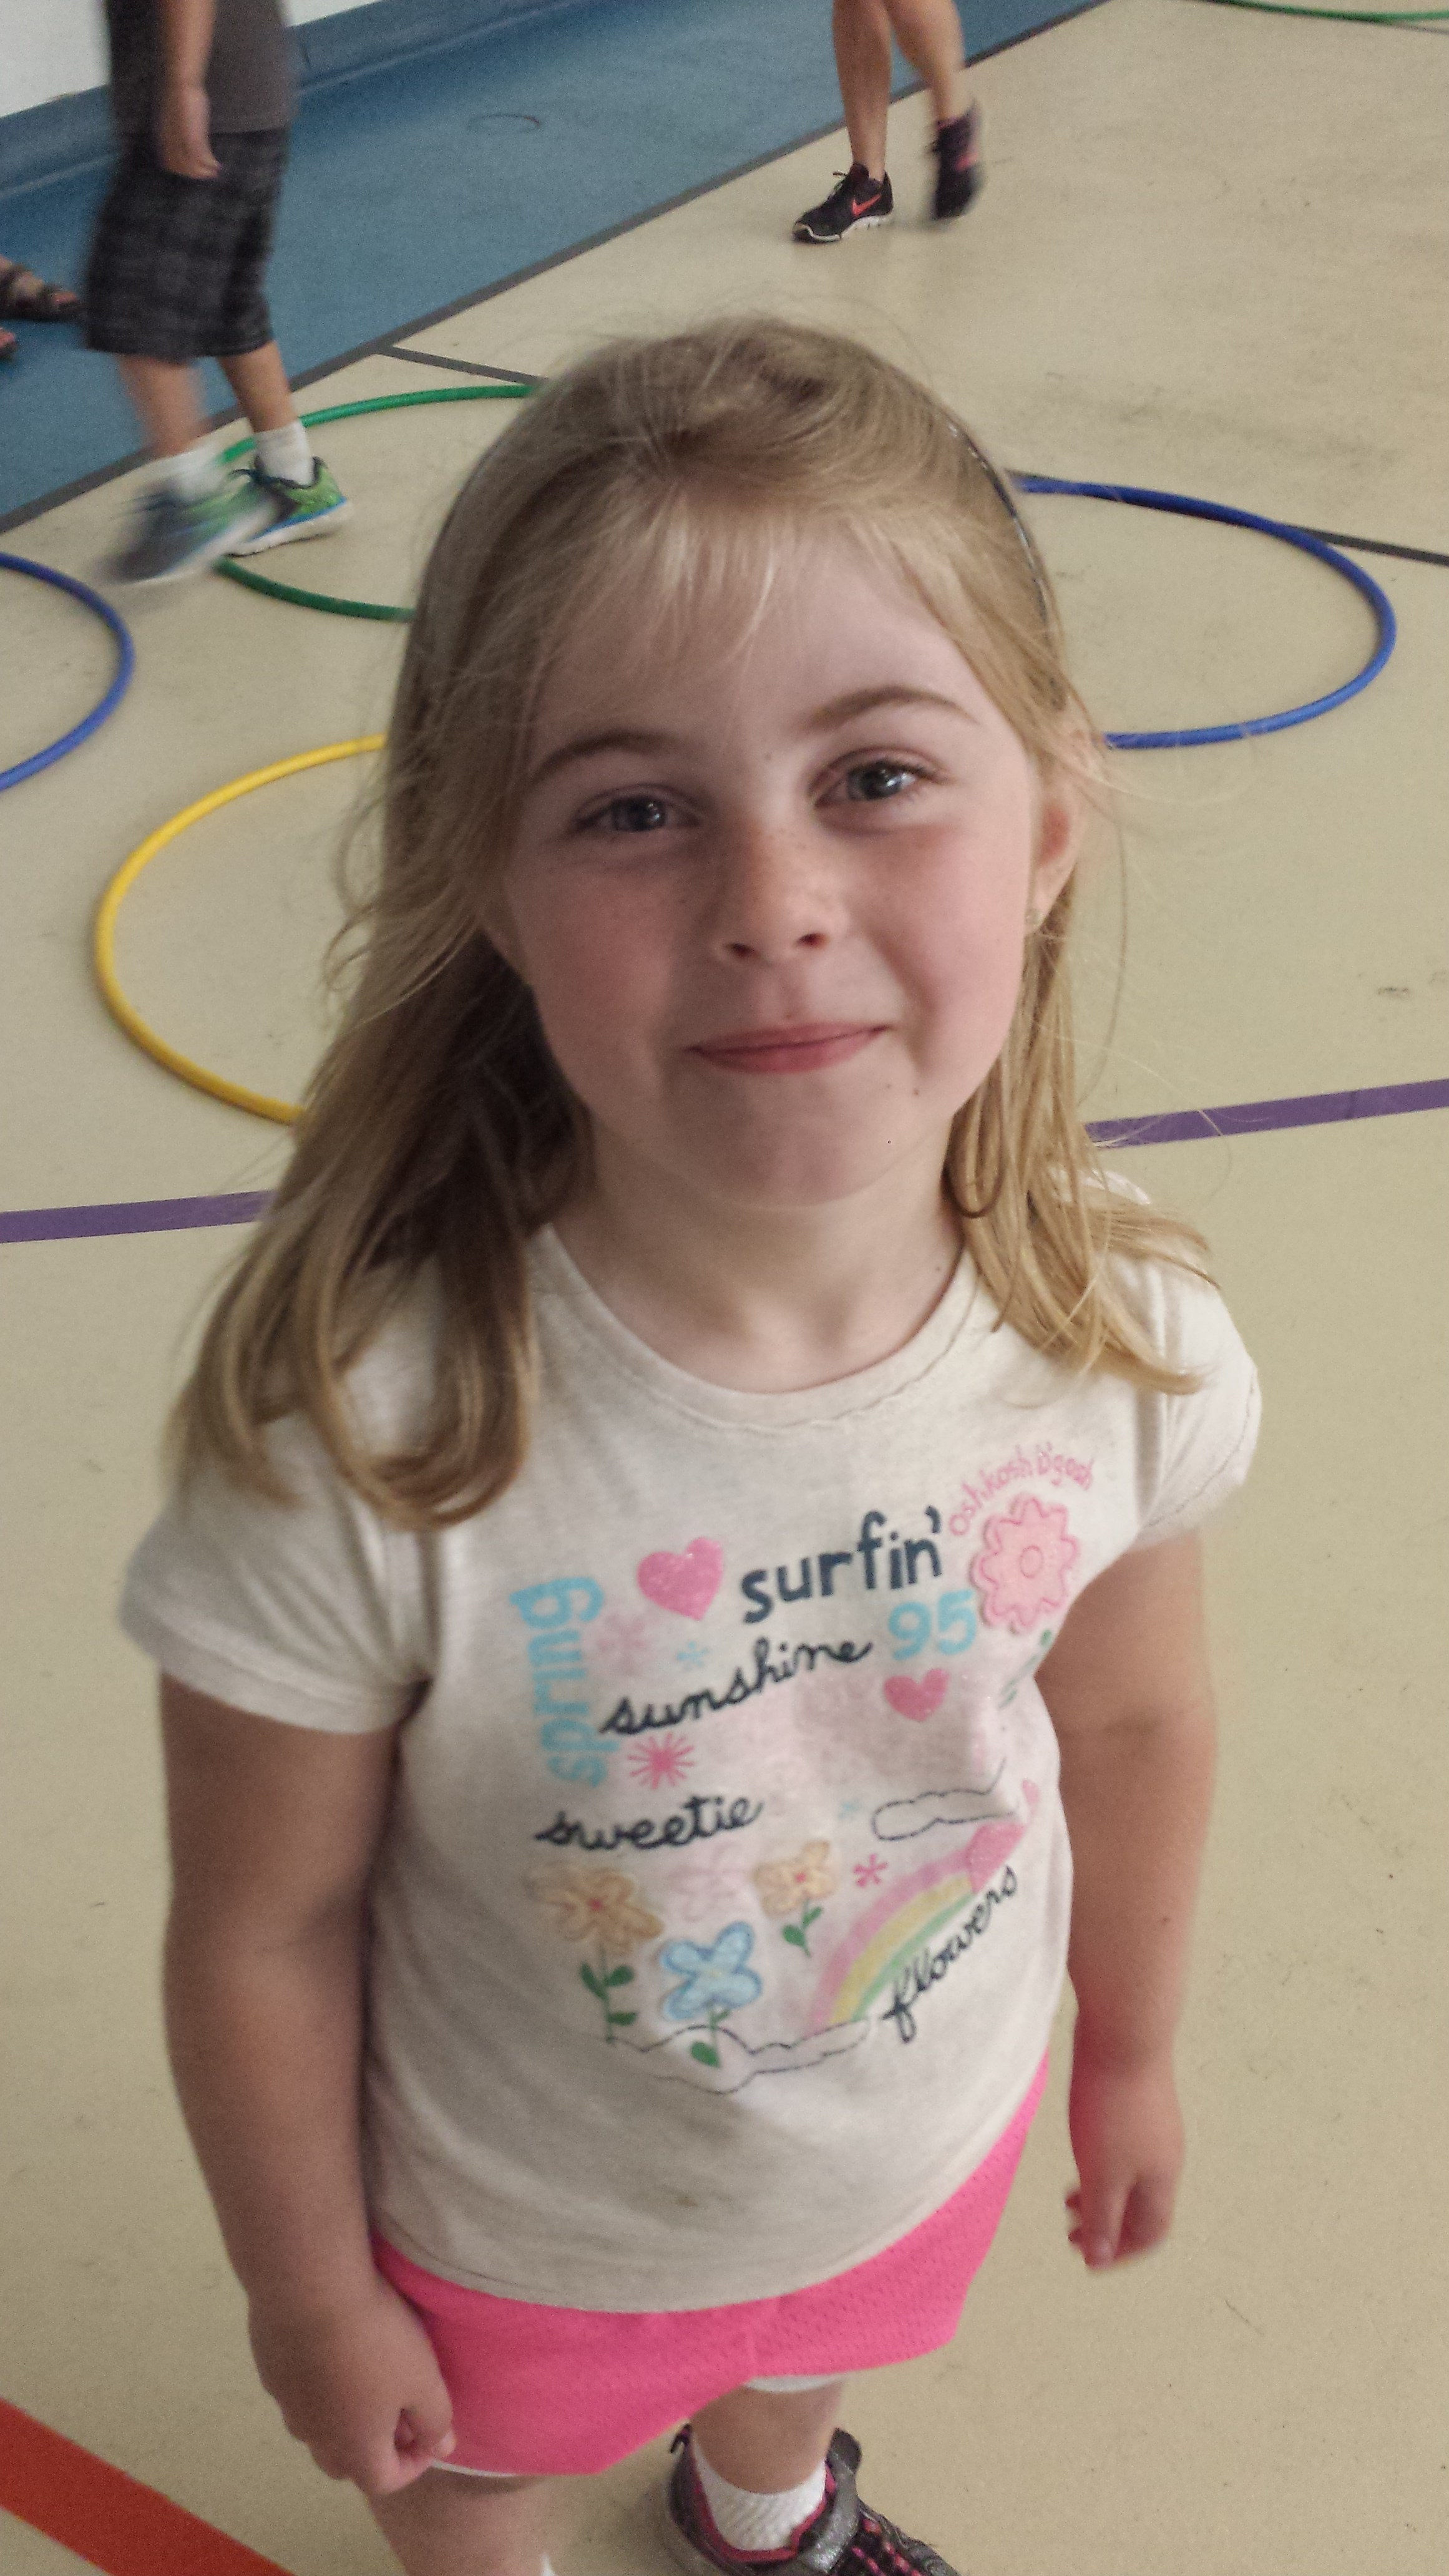 A child smiling in the gym